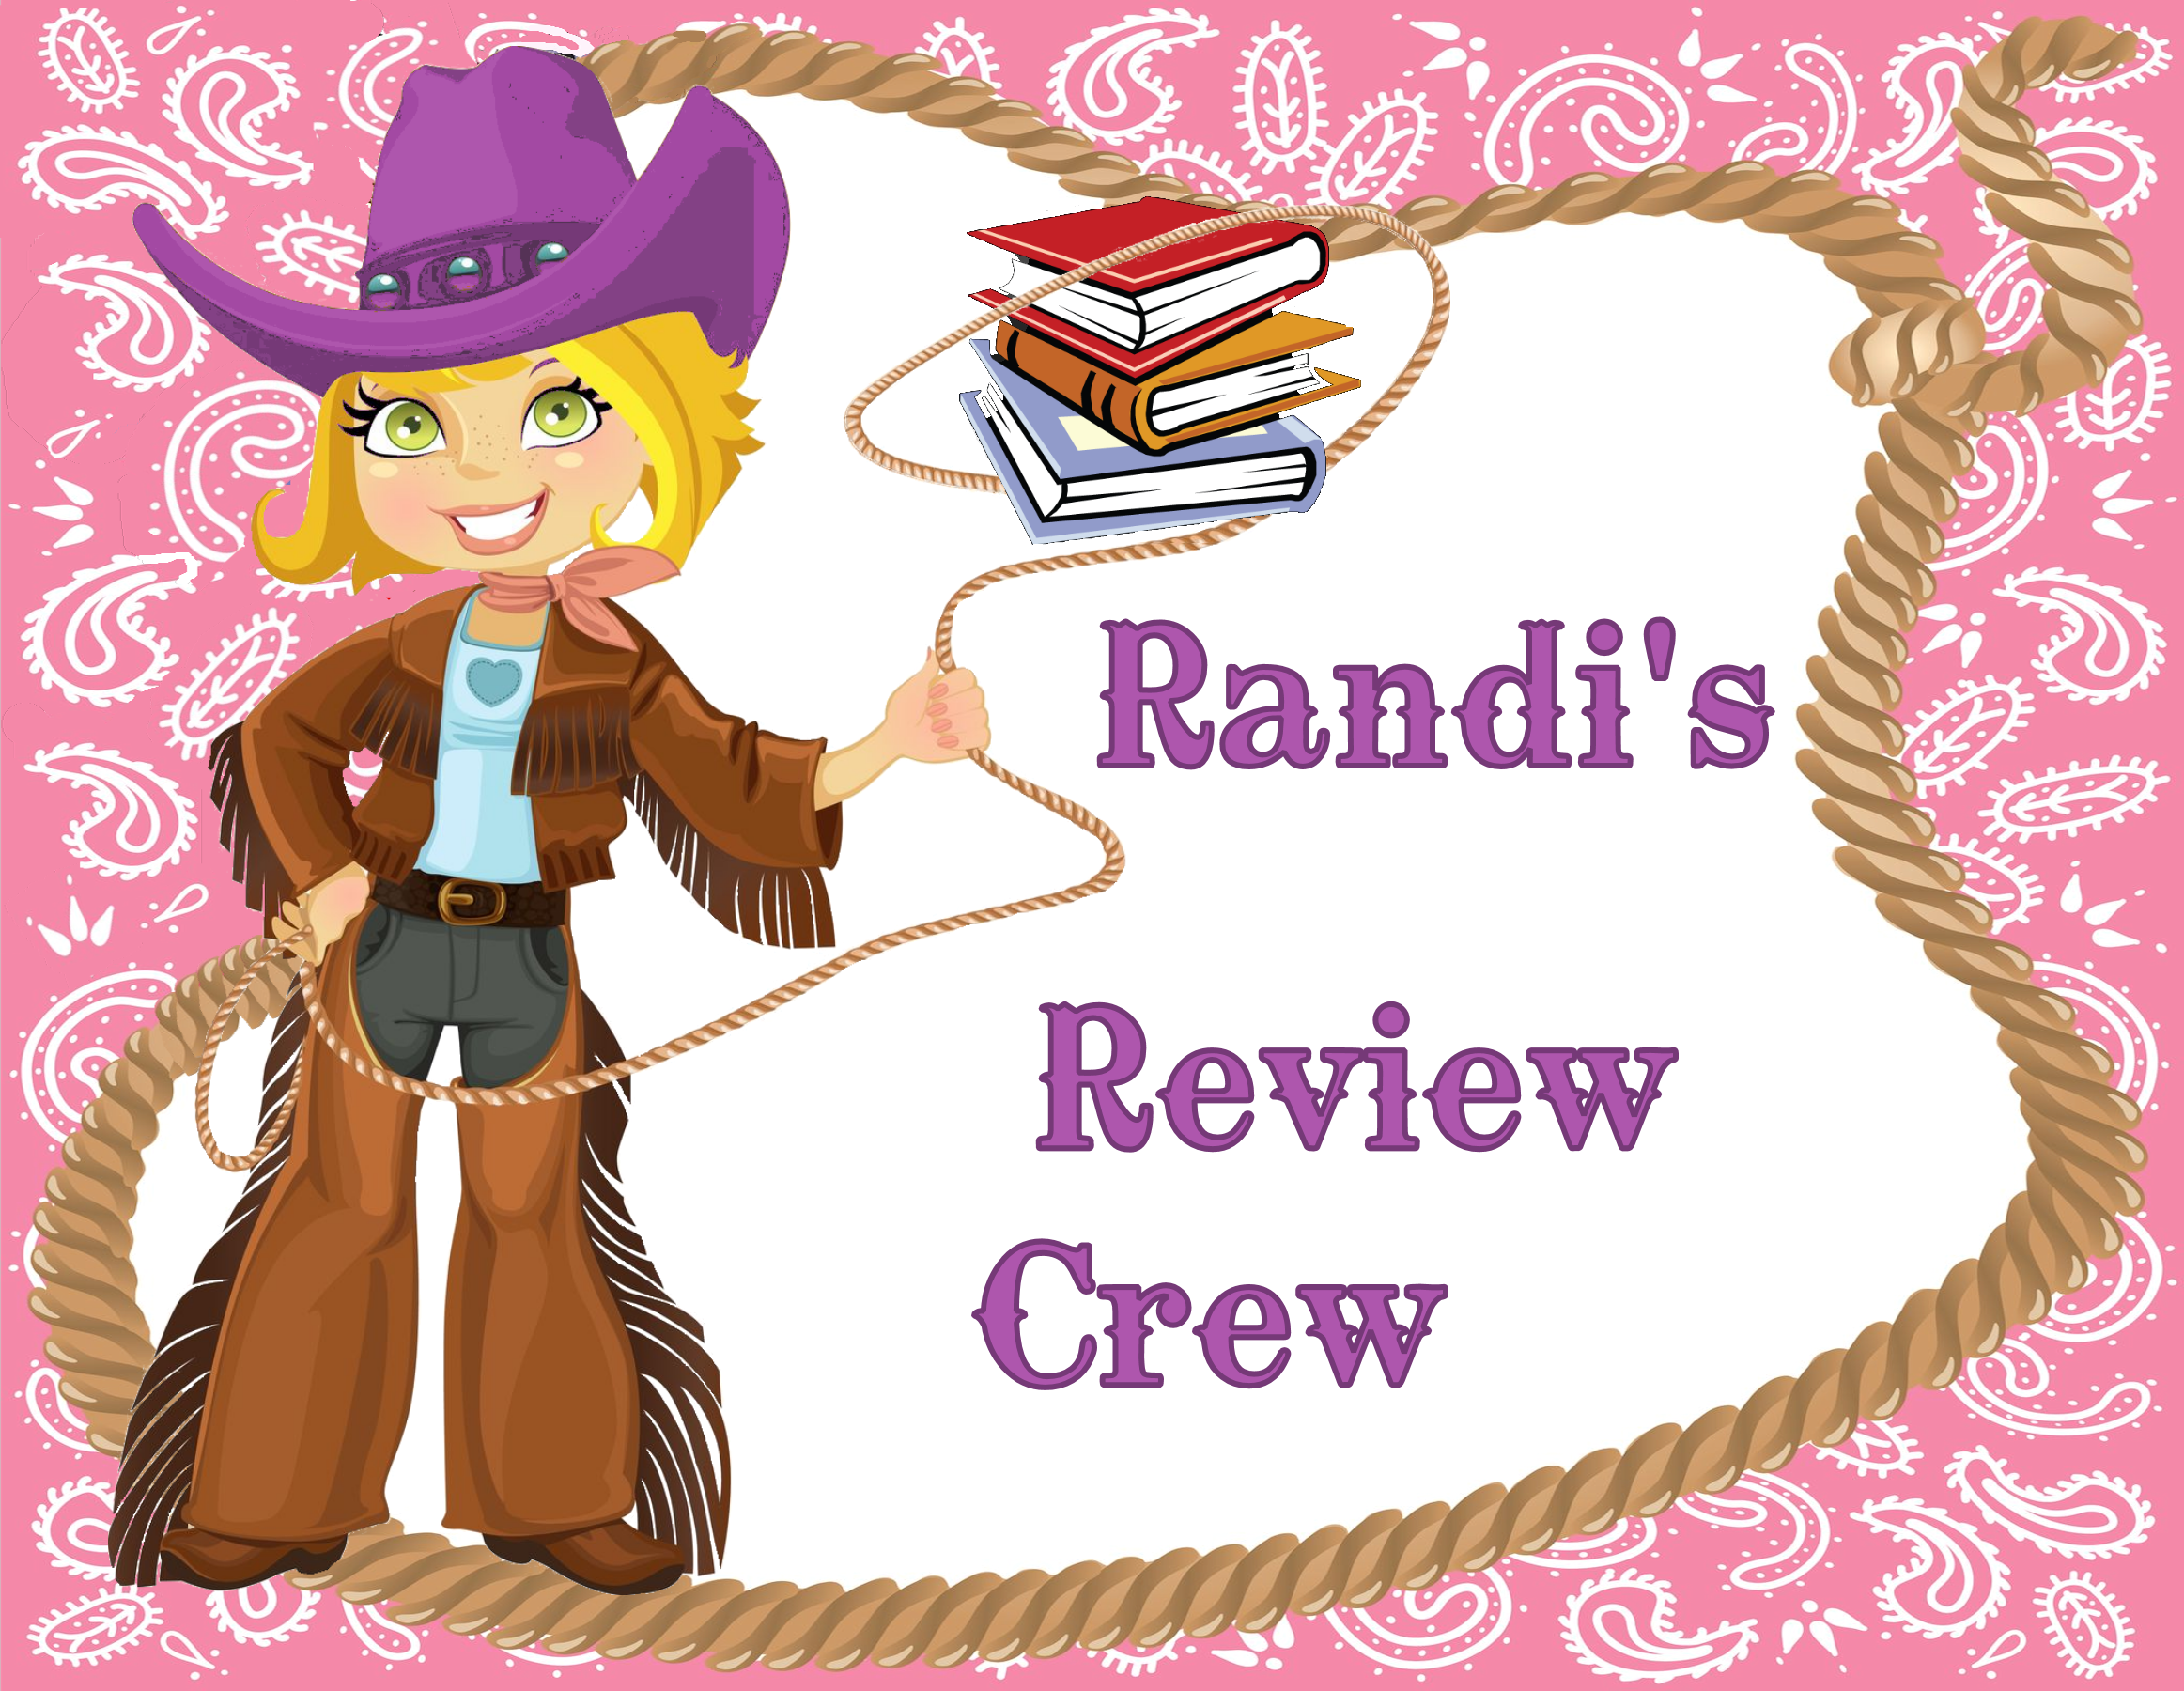 Join Randi's Review Crew!